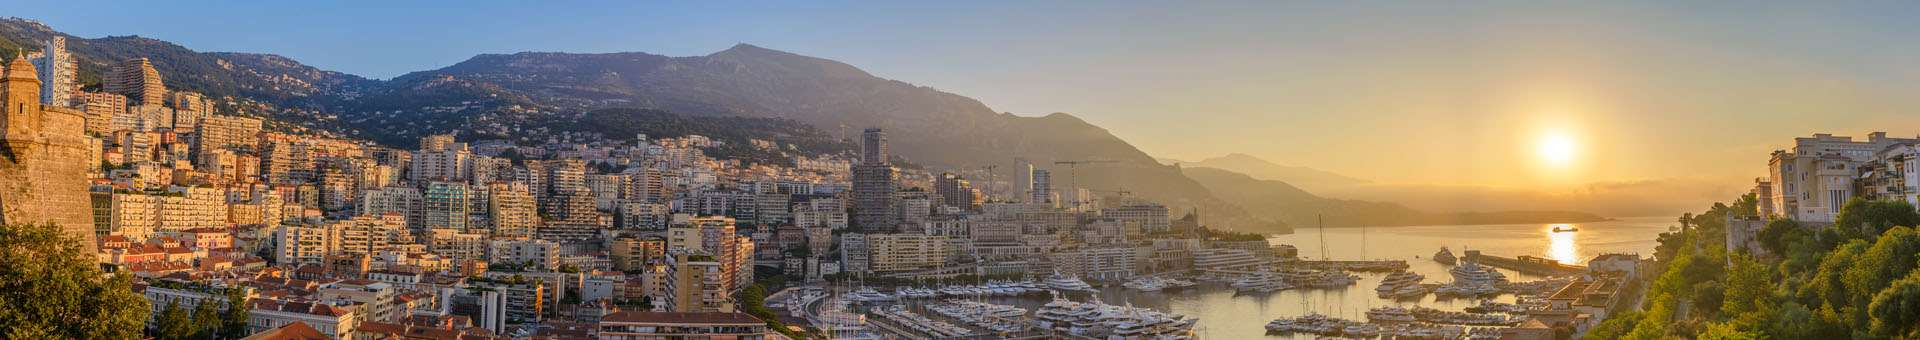 Search Whois information of domain names in Monaco